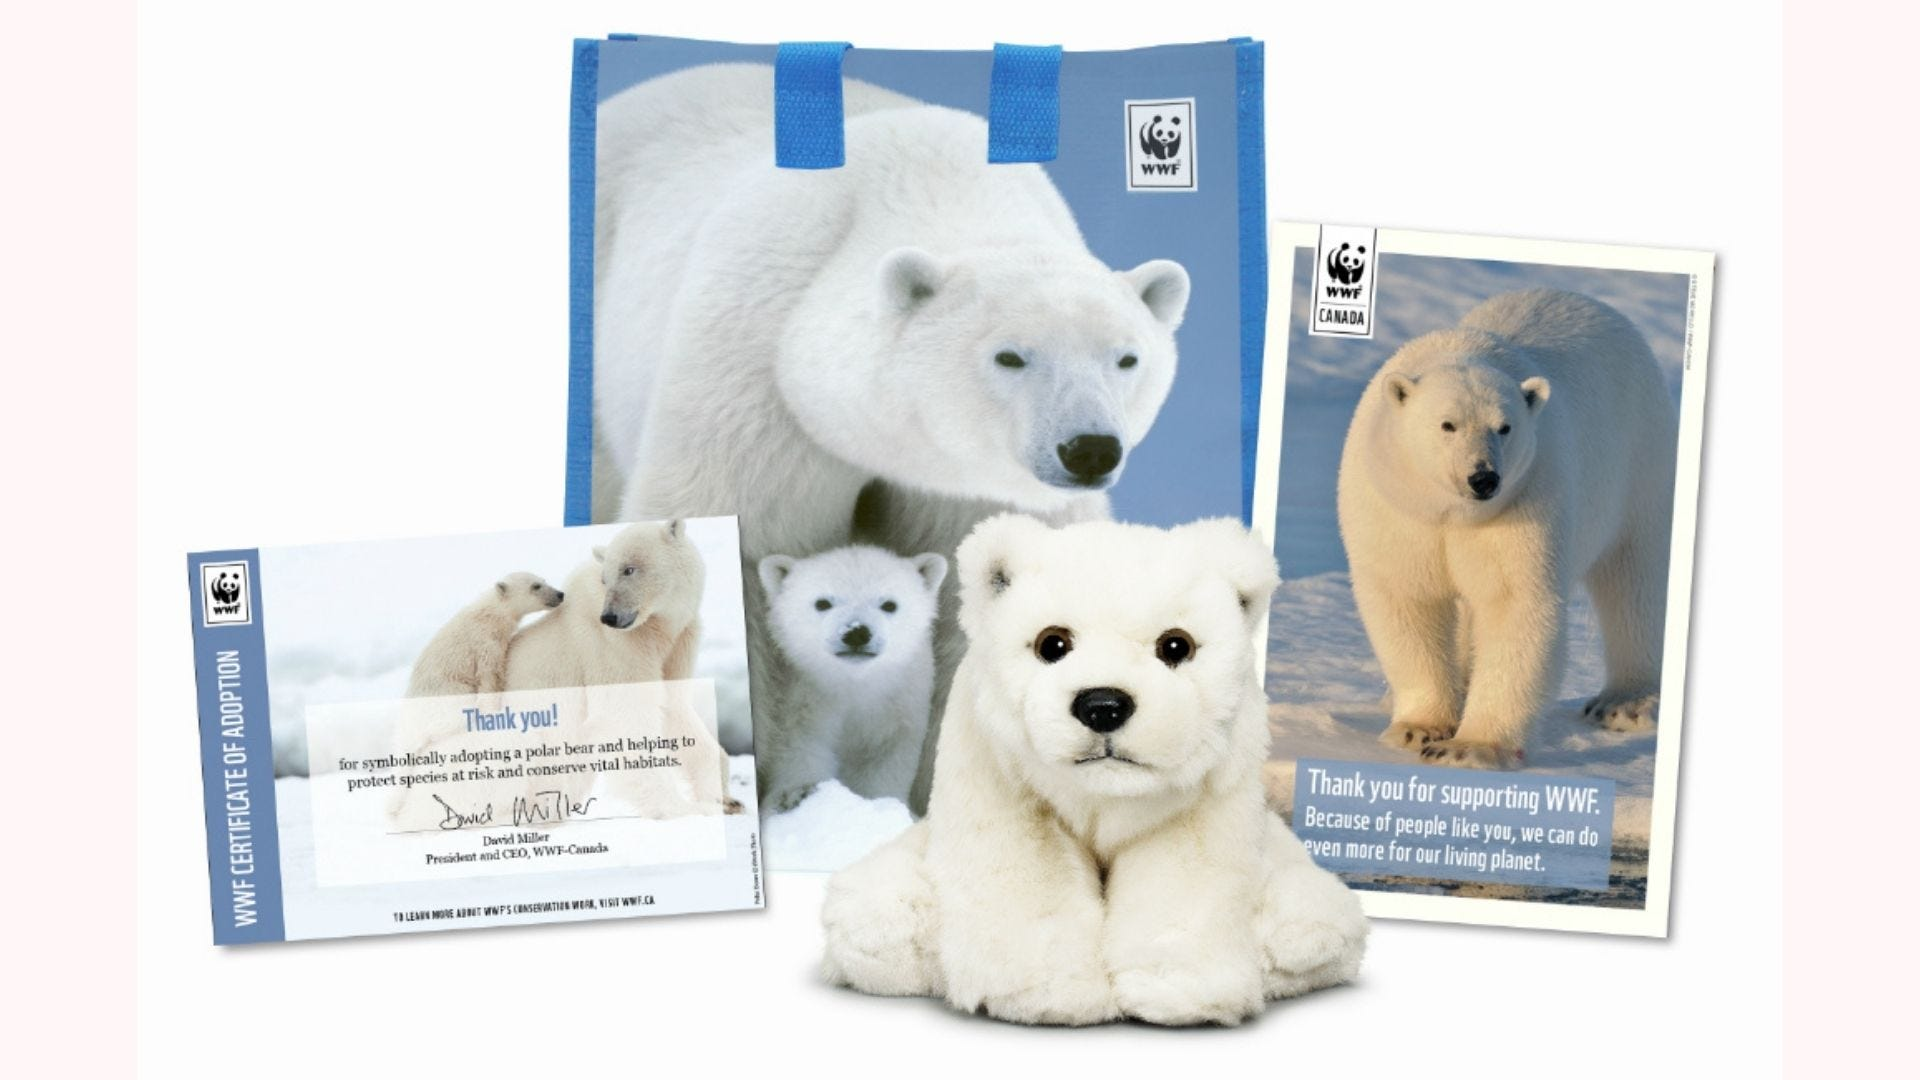 WWF Polar Bear adoption kit.